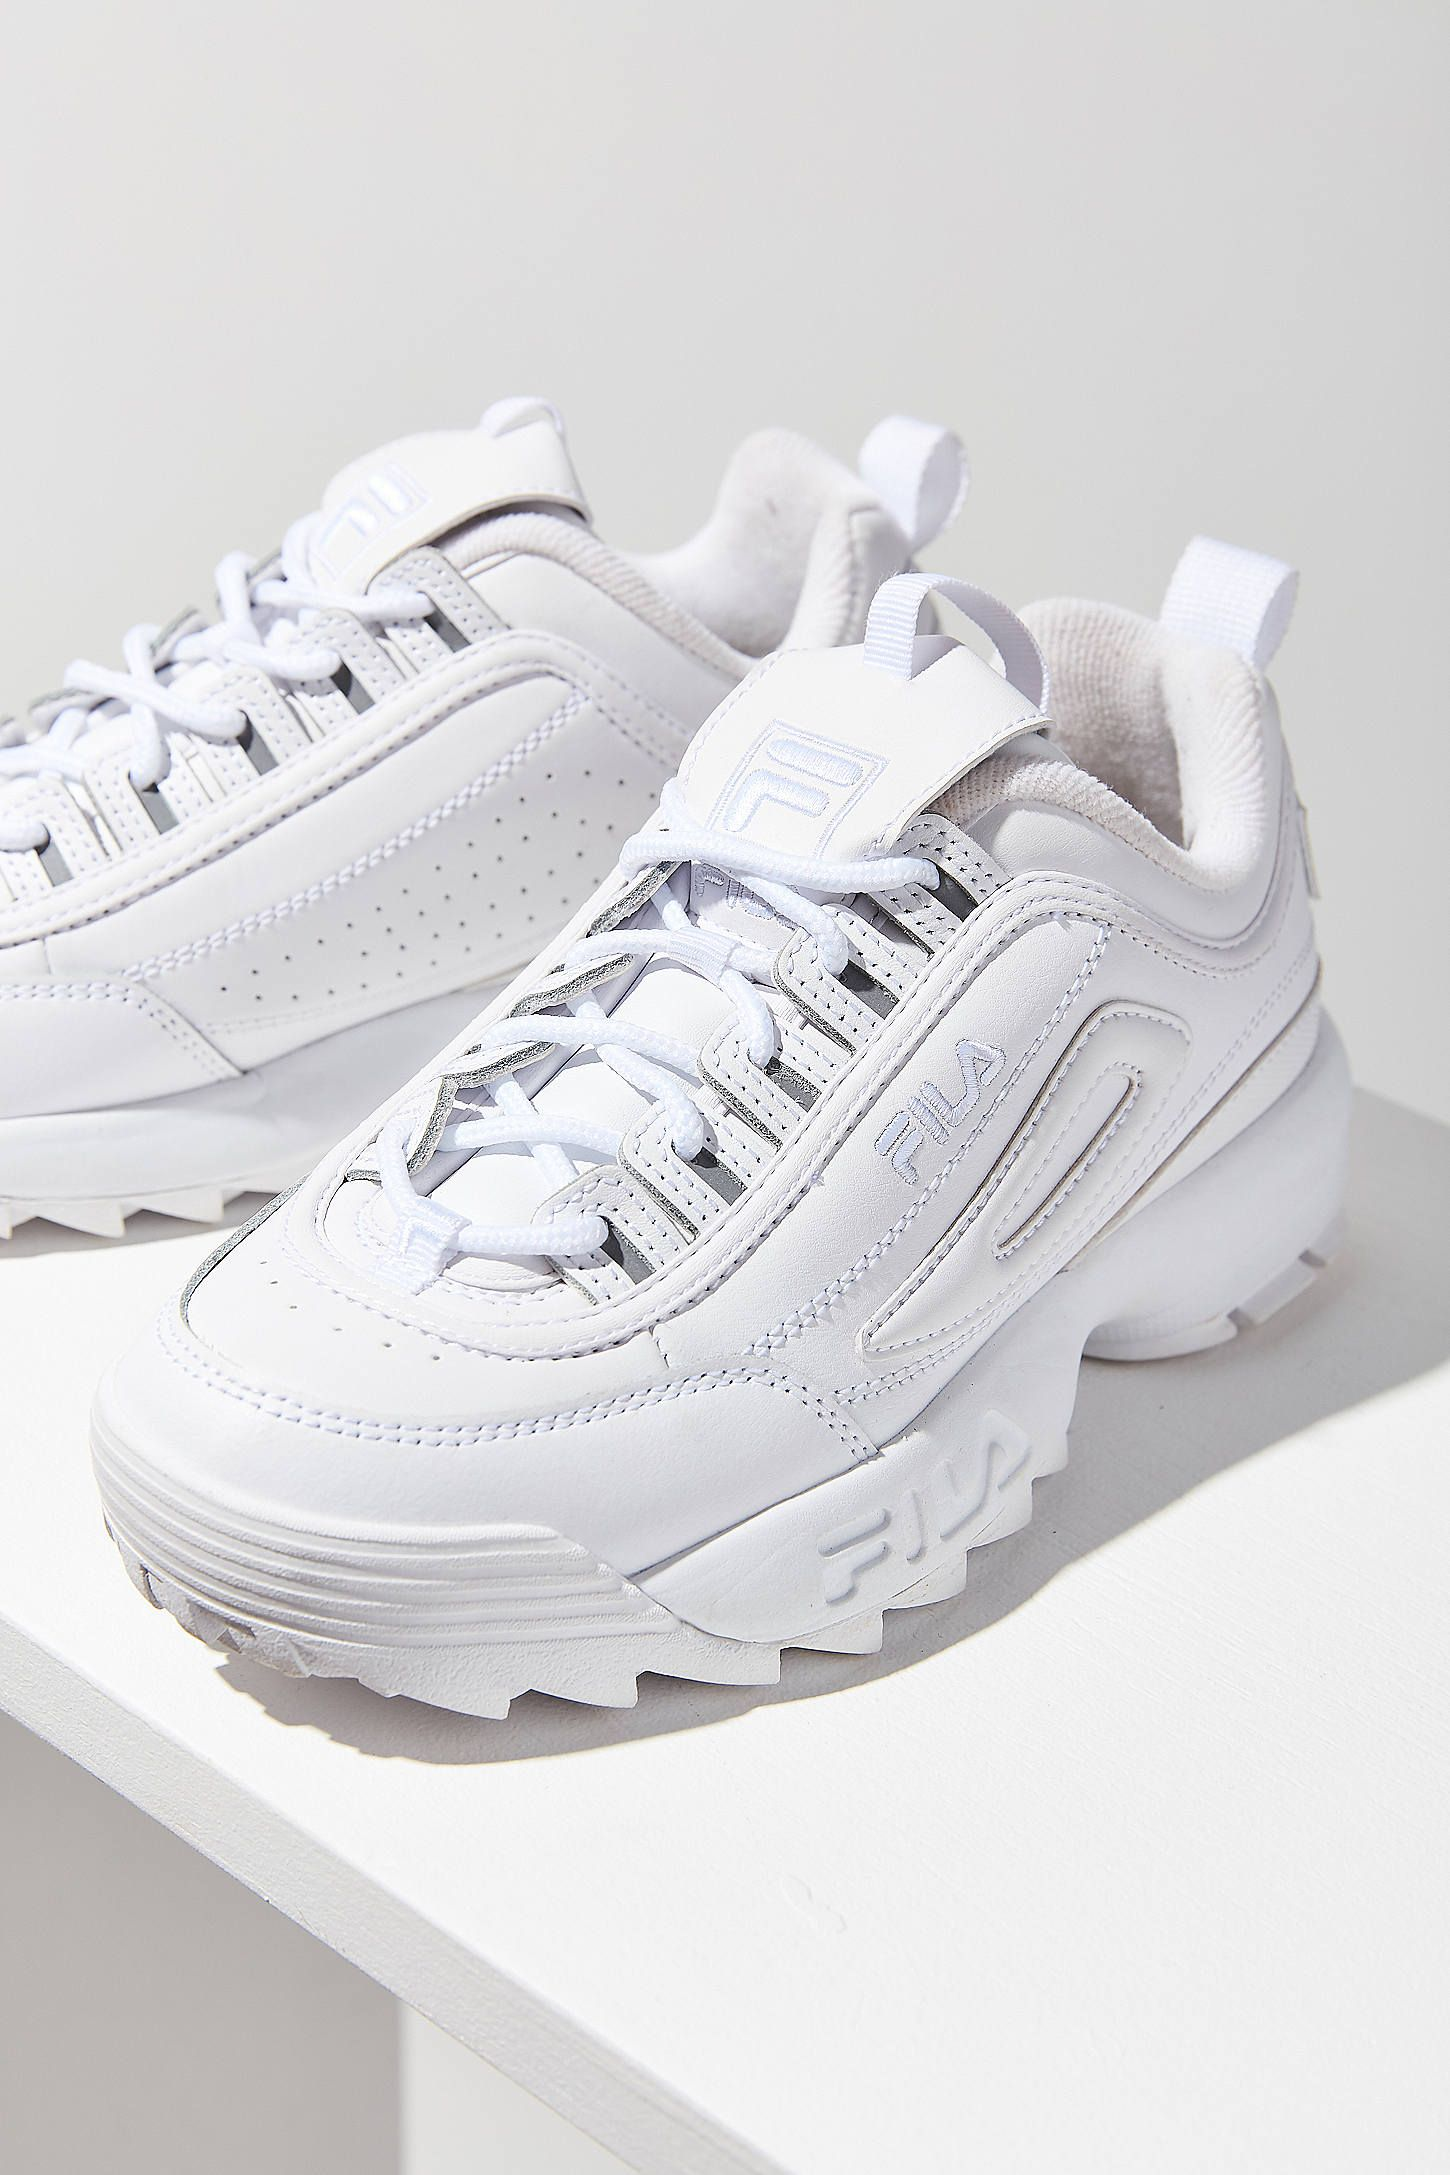 8818d86c34a0 Shop FILA Disruptor II Premium Mono Sneaker at Urban Outfitters today. We  carry all the latest styles